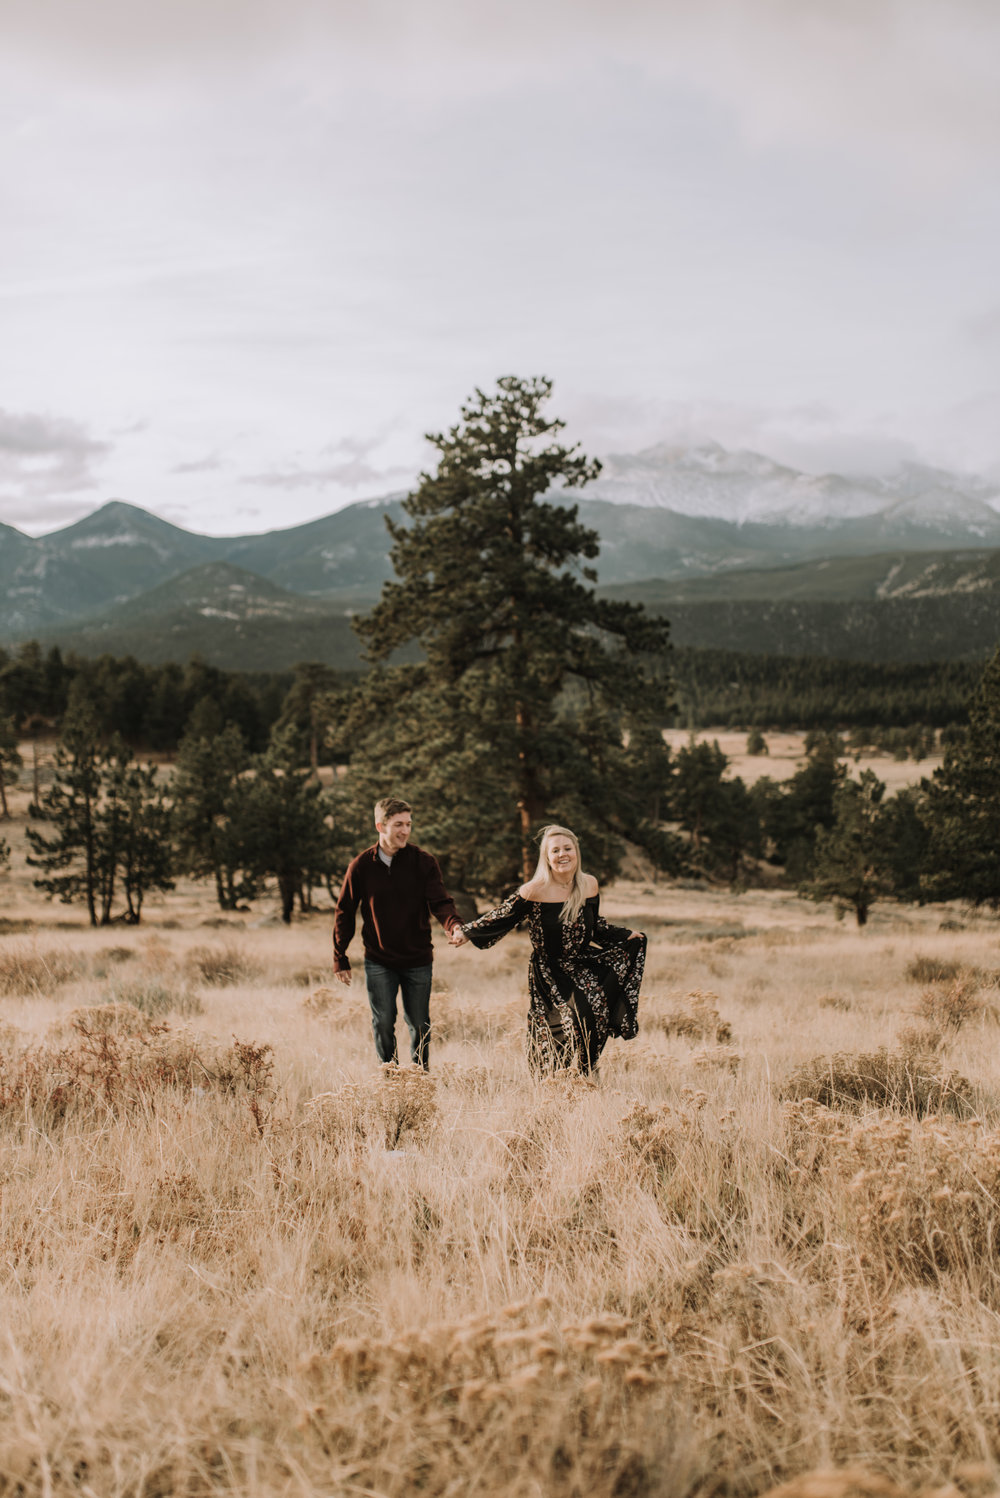 Colorado intimate weddings and elopement for adventurous couples